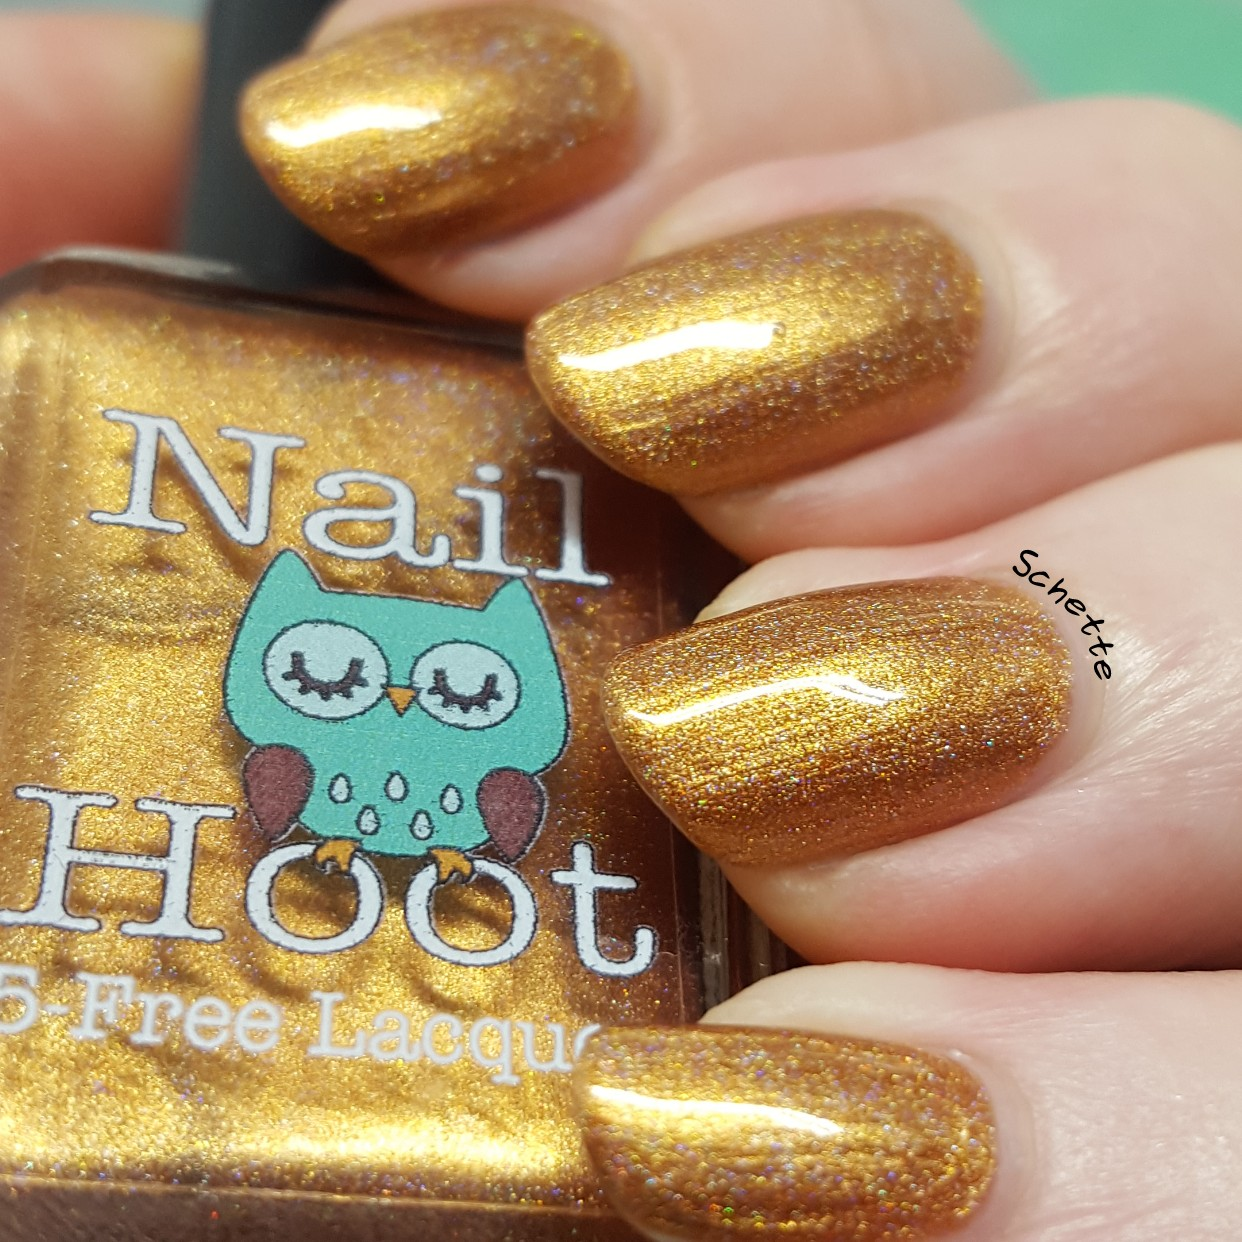 Nail Hoot - Topaz November